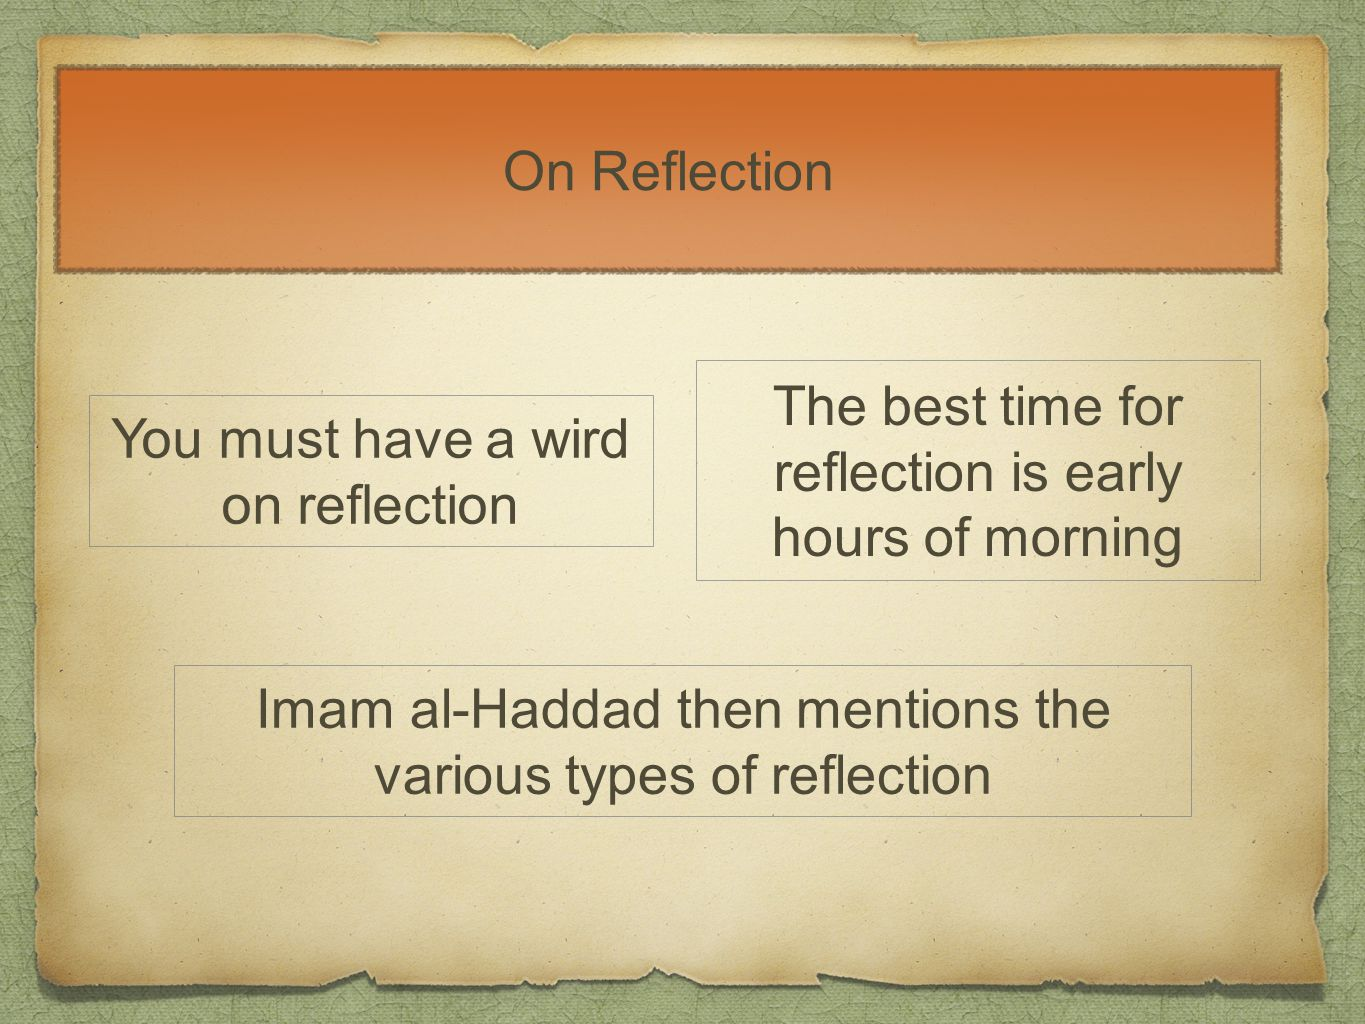 On Reflection You must have a wird on reflection The best time for reflection is early hours of morning Imam al-Haddad then mentions the various types of reflection